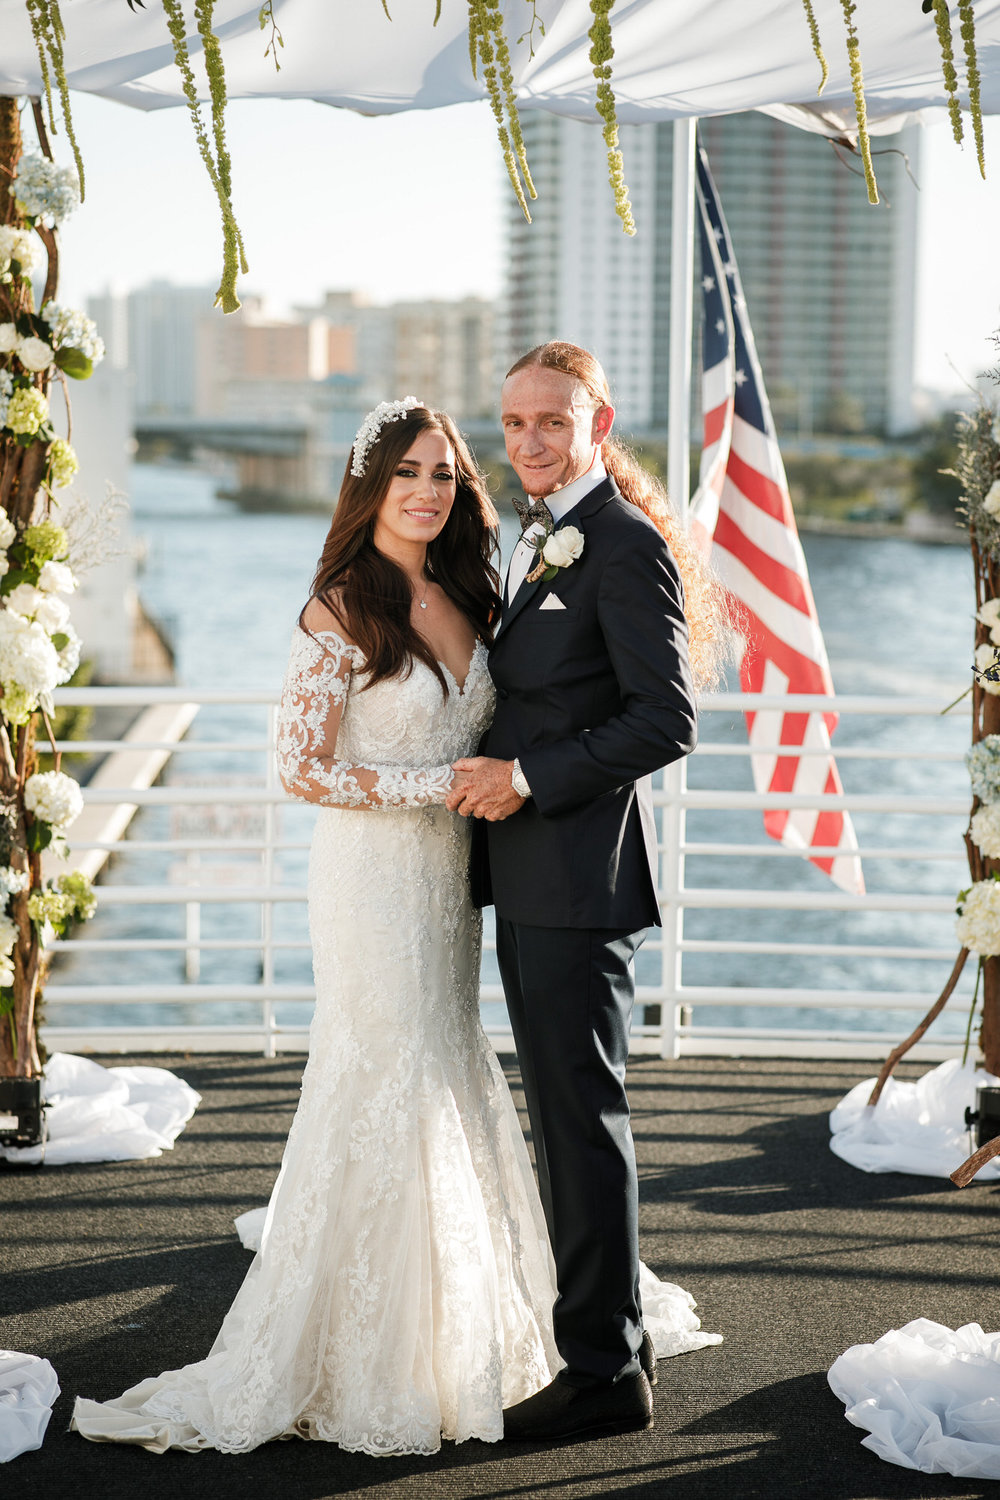 VIEW MORE - RACHEL & KEVIN | WEDDING ABOARD THE GRAND FLORIDAN HOLLYWOOD,  FLORIDA